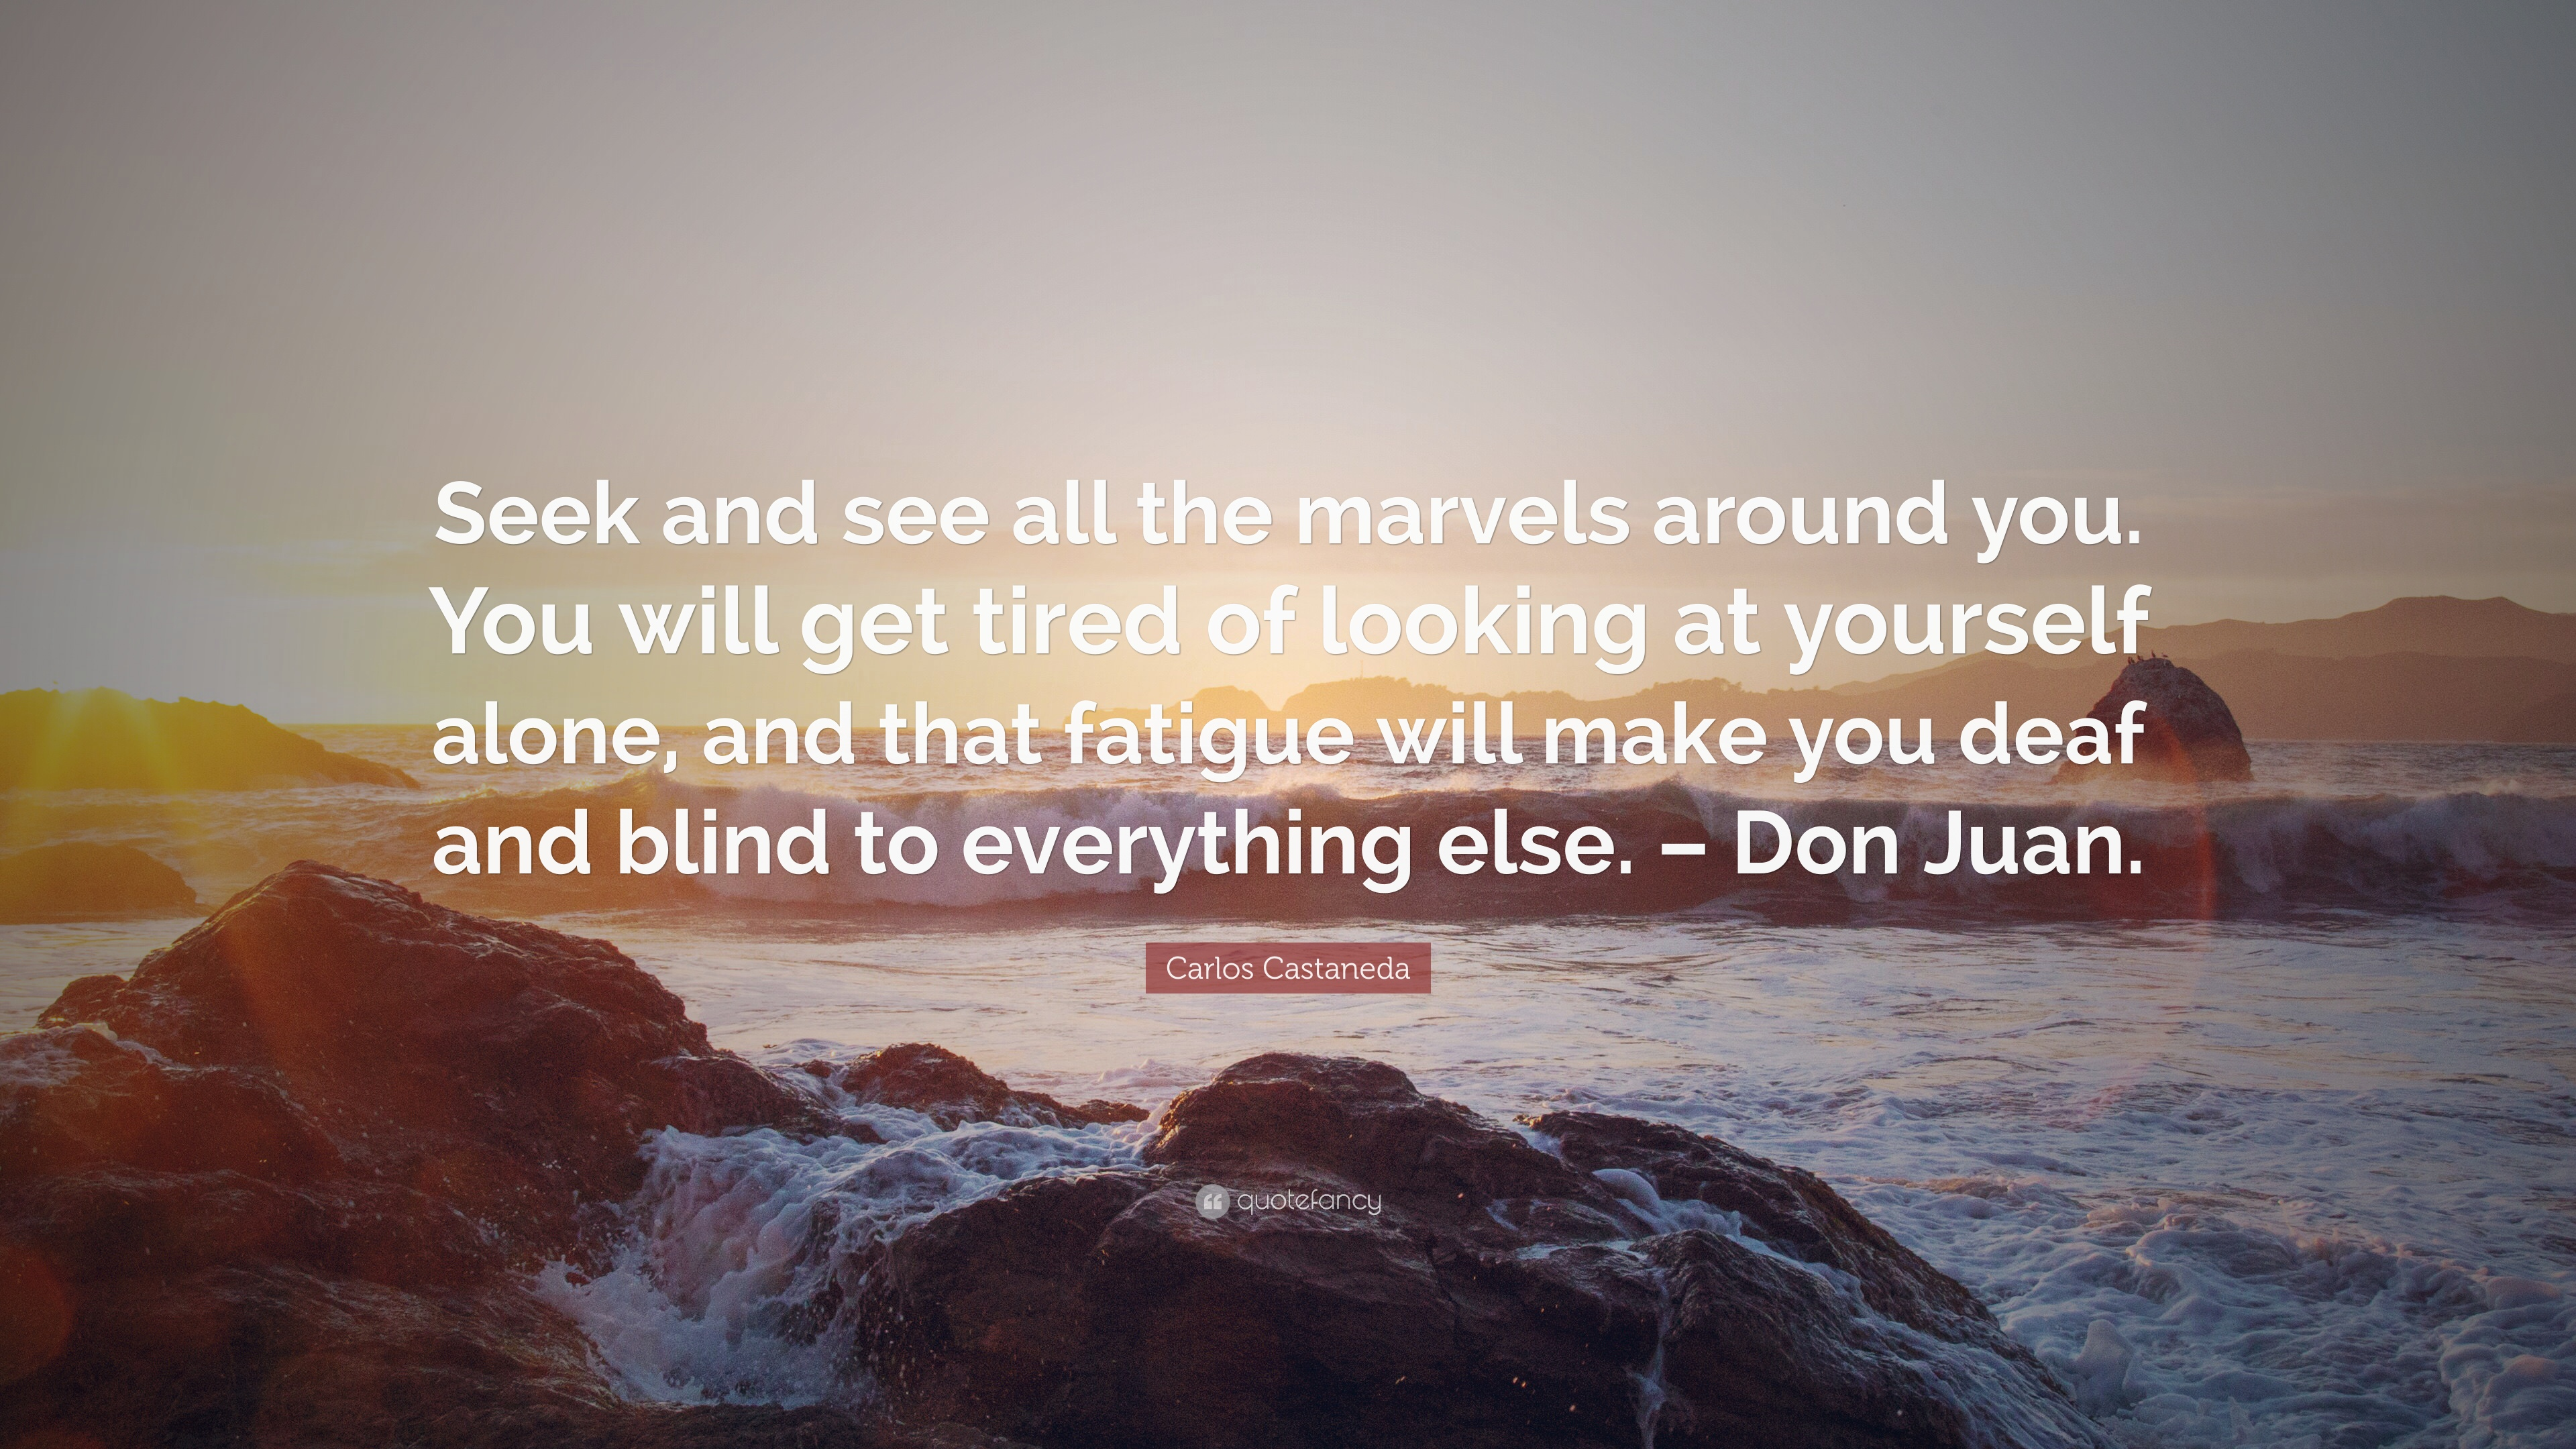 When You Get Tired Of Looking Around >> Carlos Castaneda Quote Seek And See All The Marvels Around You